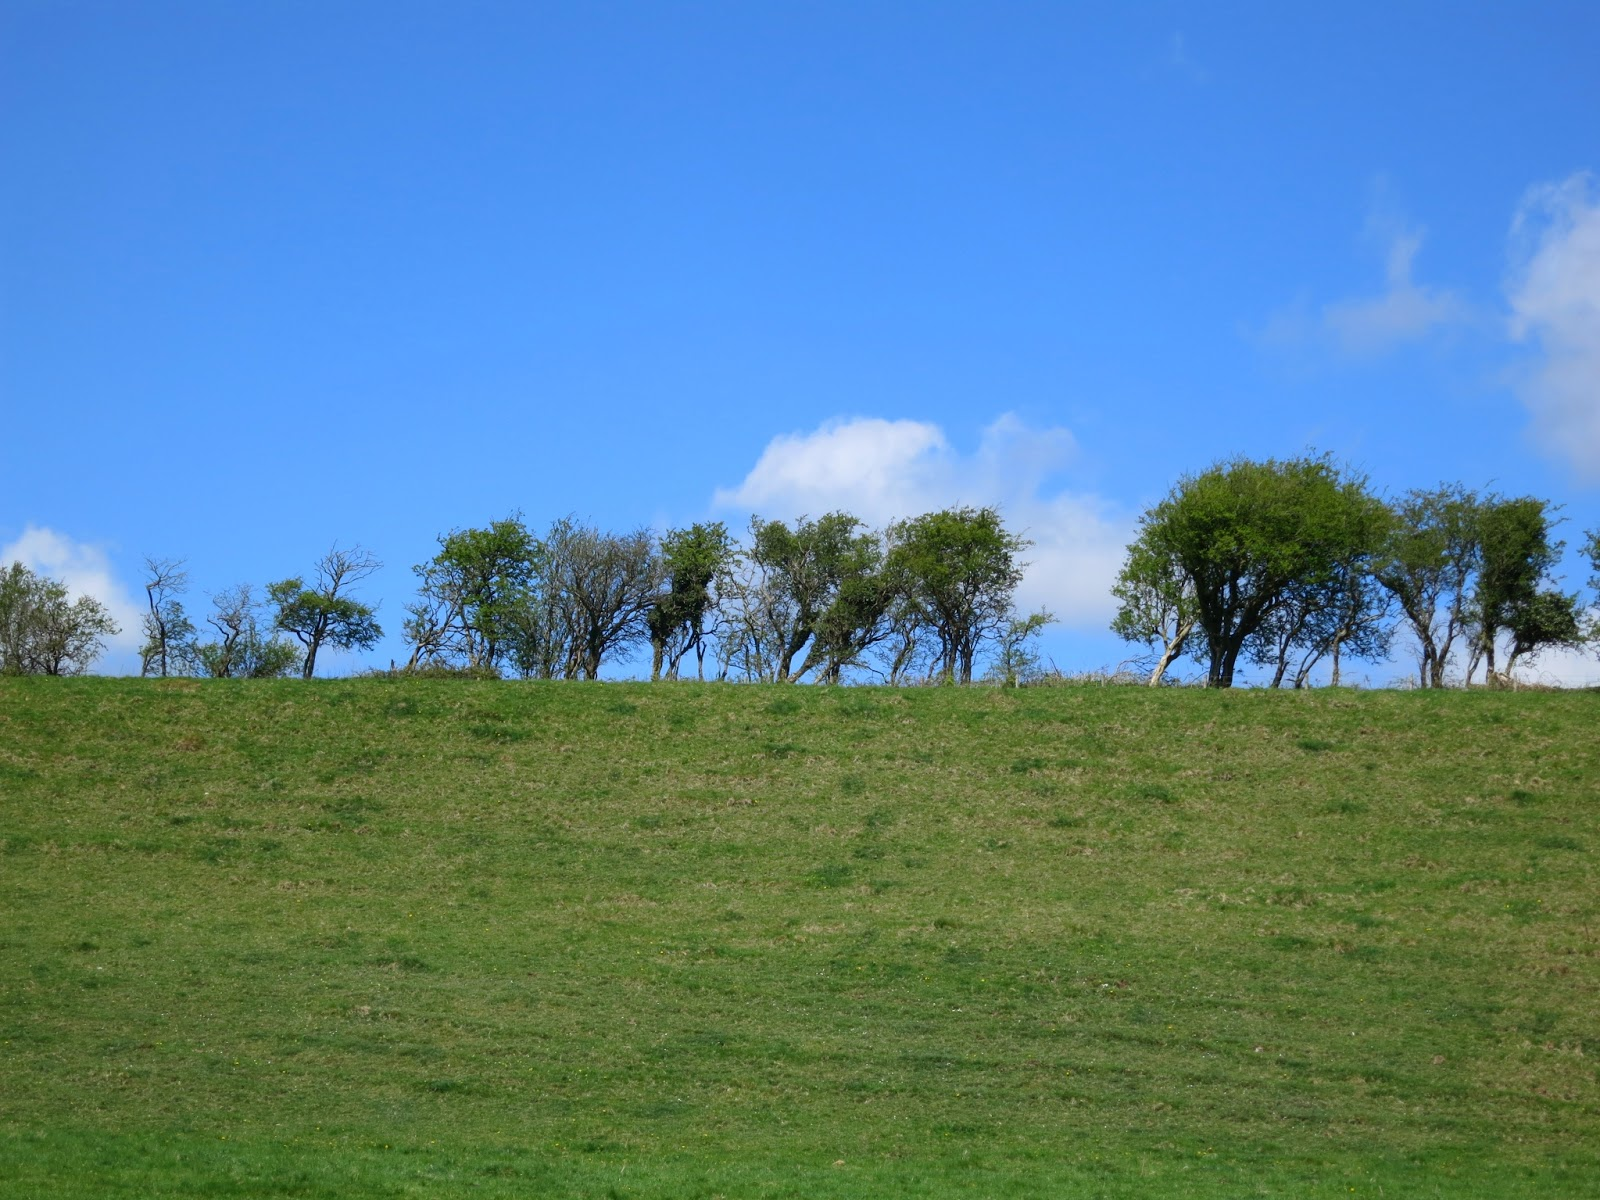 A row of trees along the top of a grassy hill in front of blue sky.